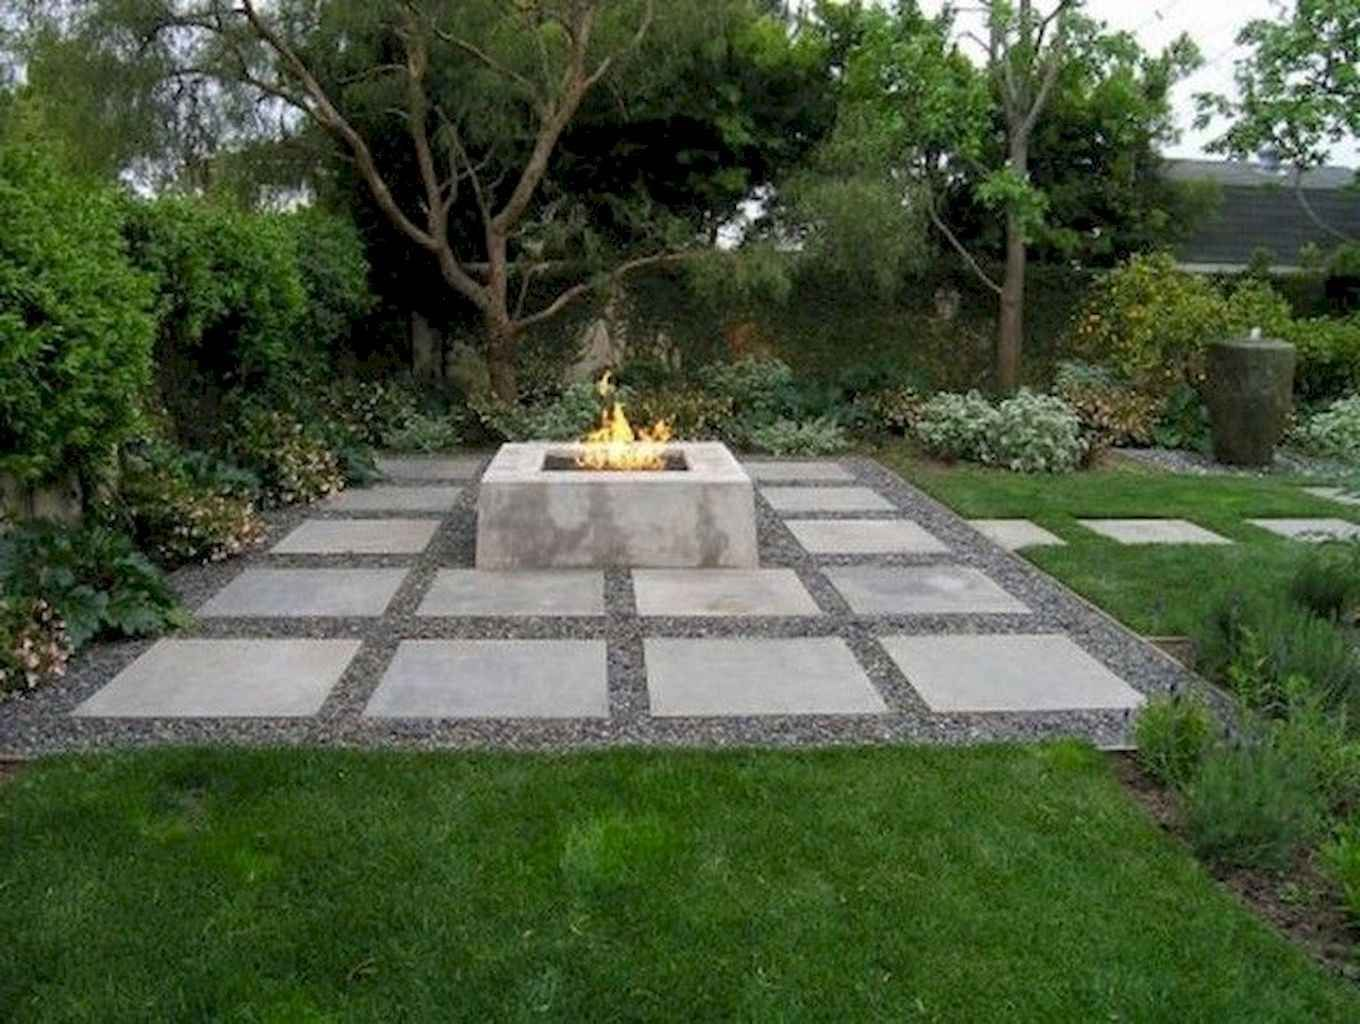 50 Easy Diy Fire Pit Ideas For Backyard Landscaping In 2020